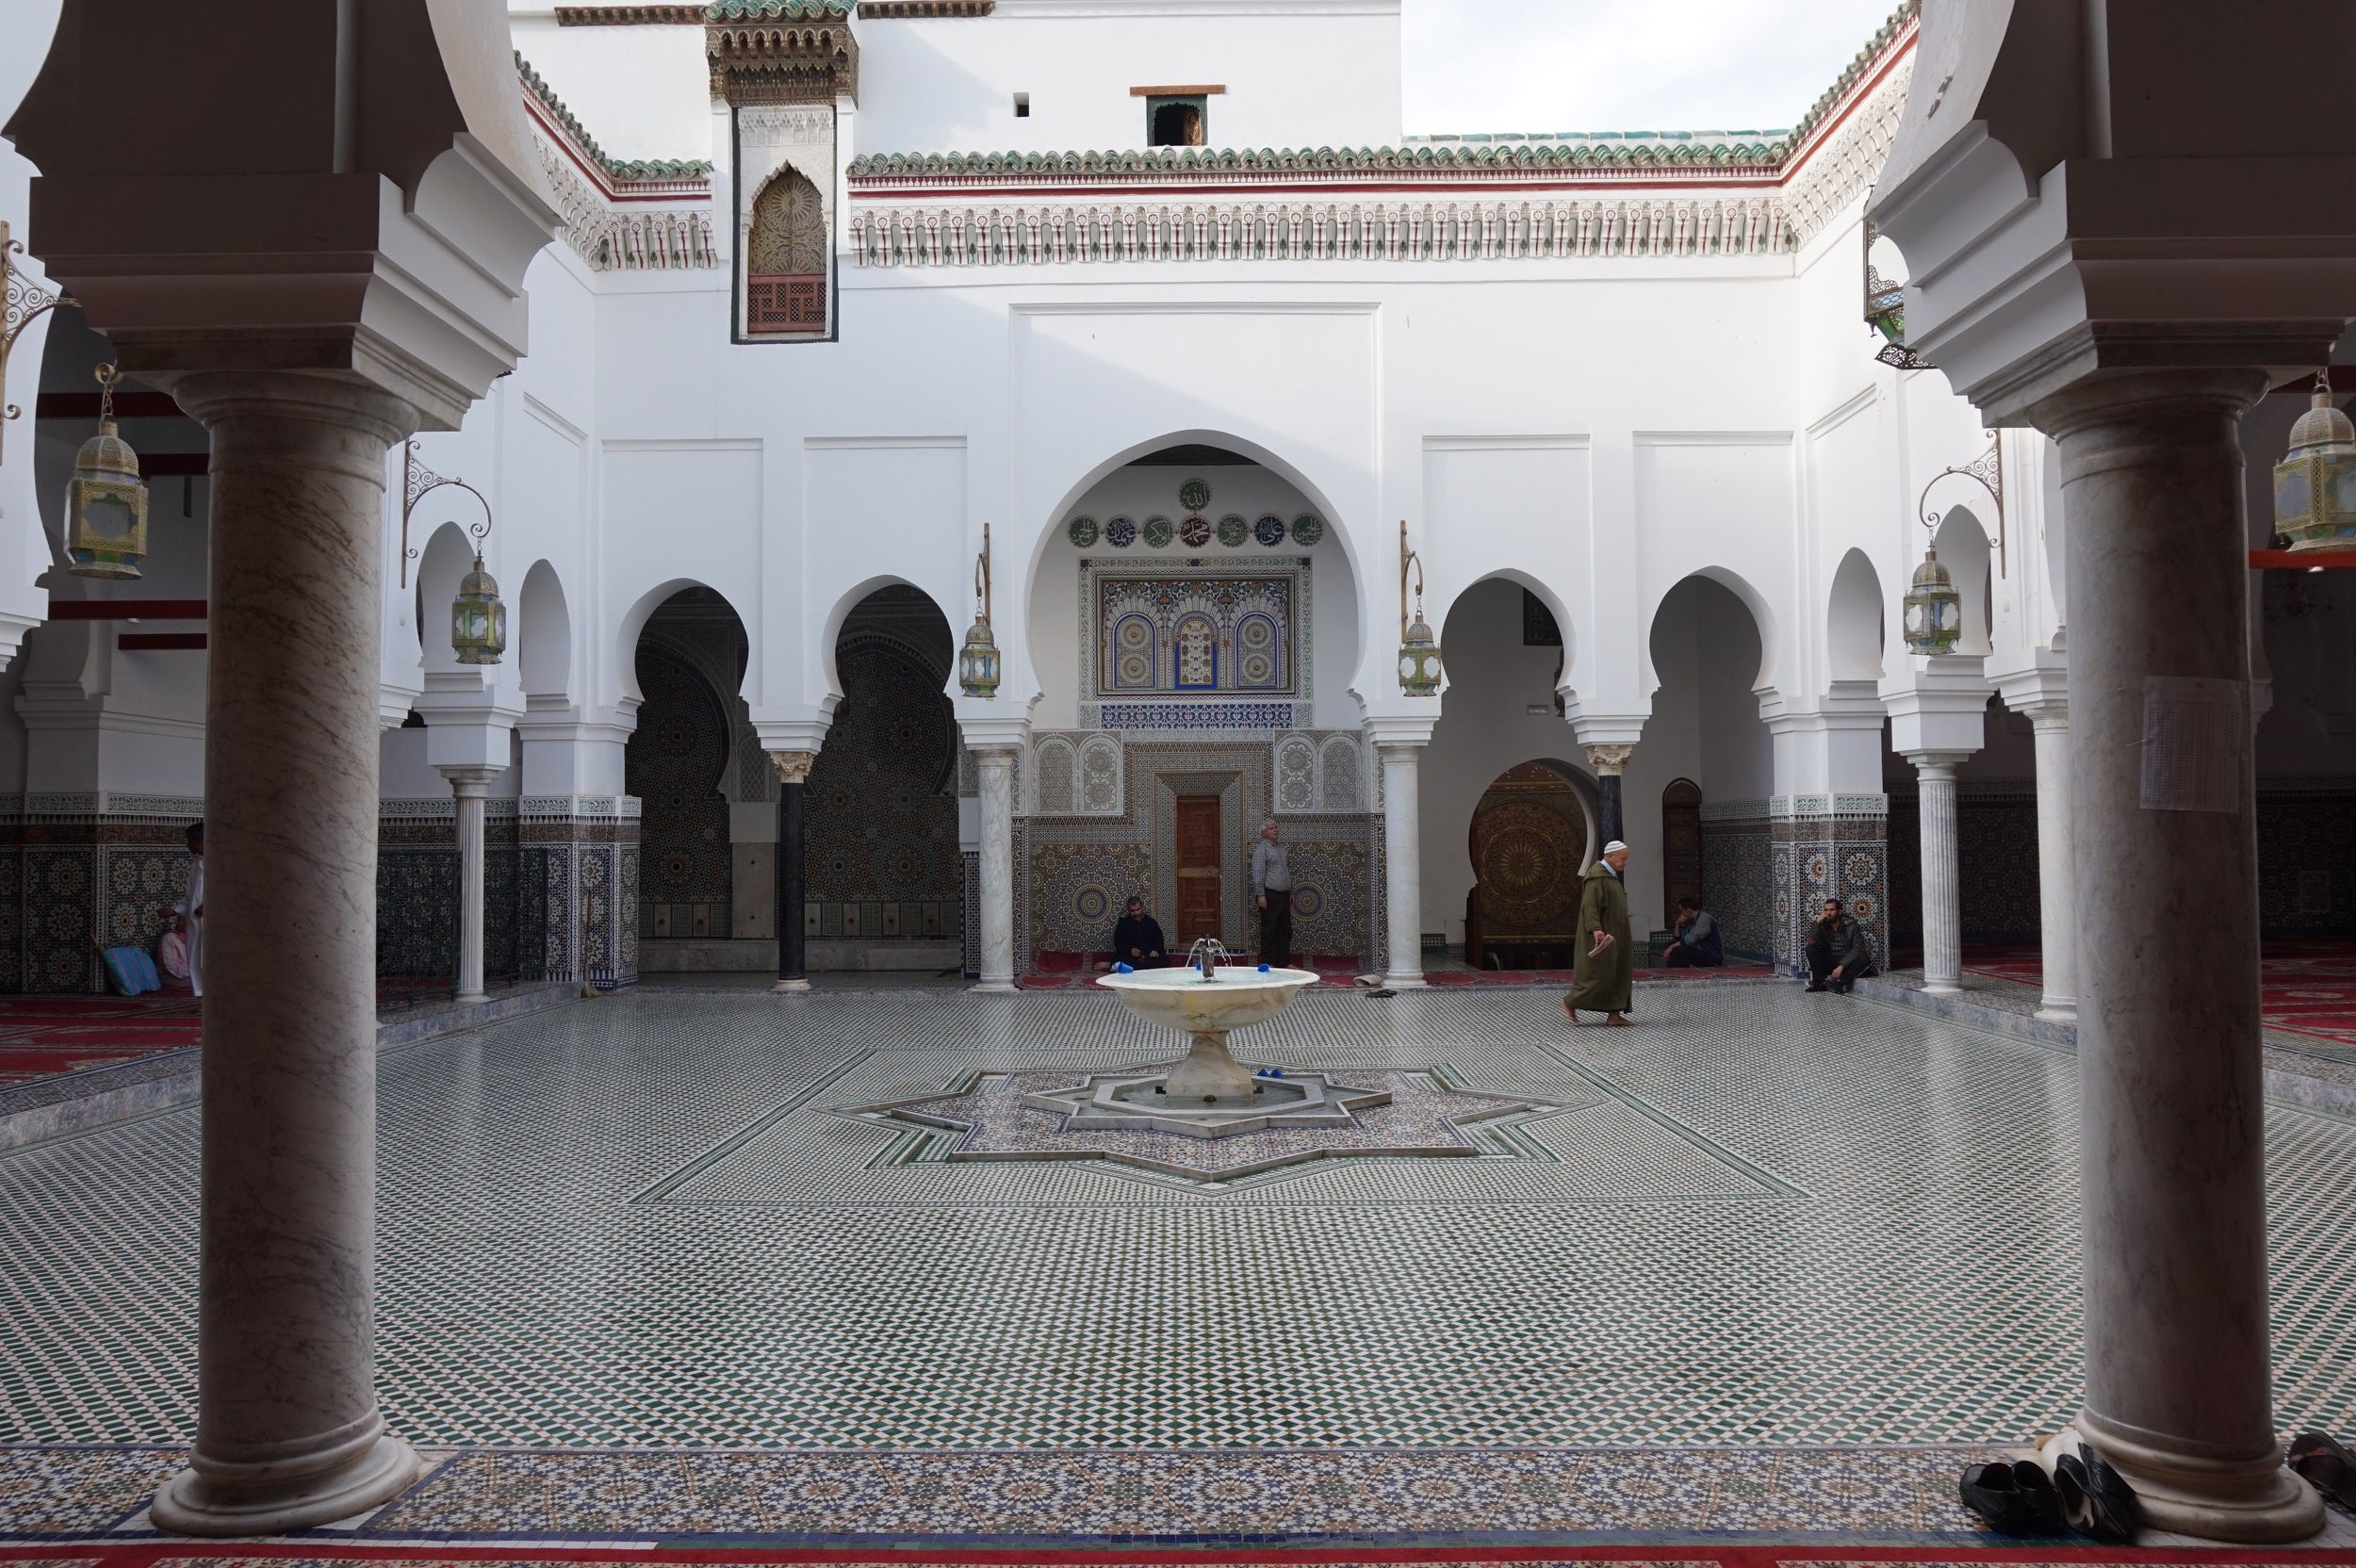 My trip to Morocco: First stop, Fez!